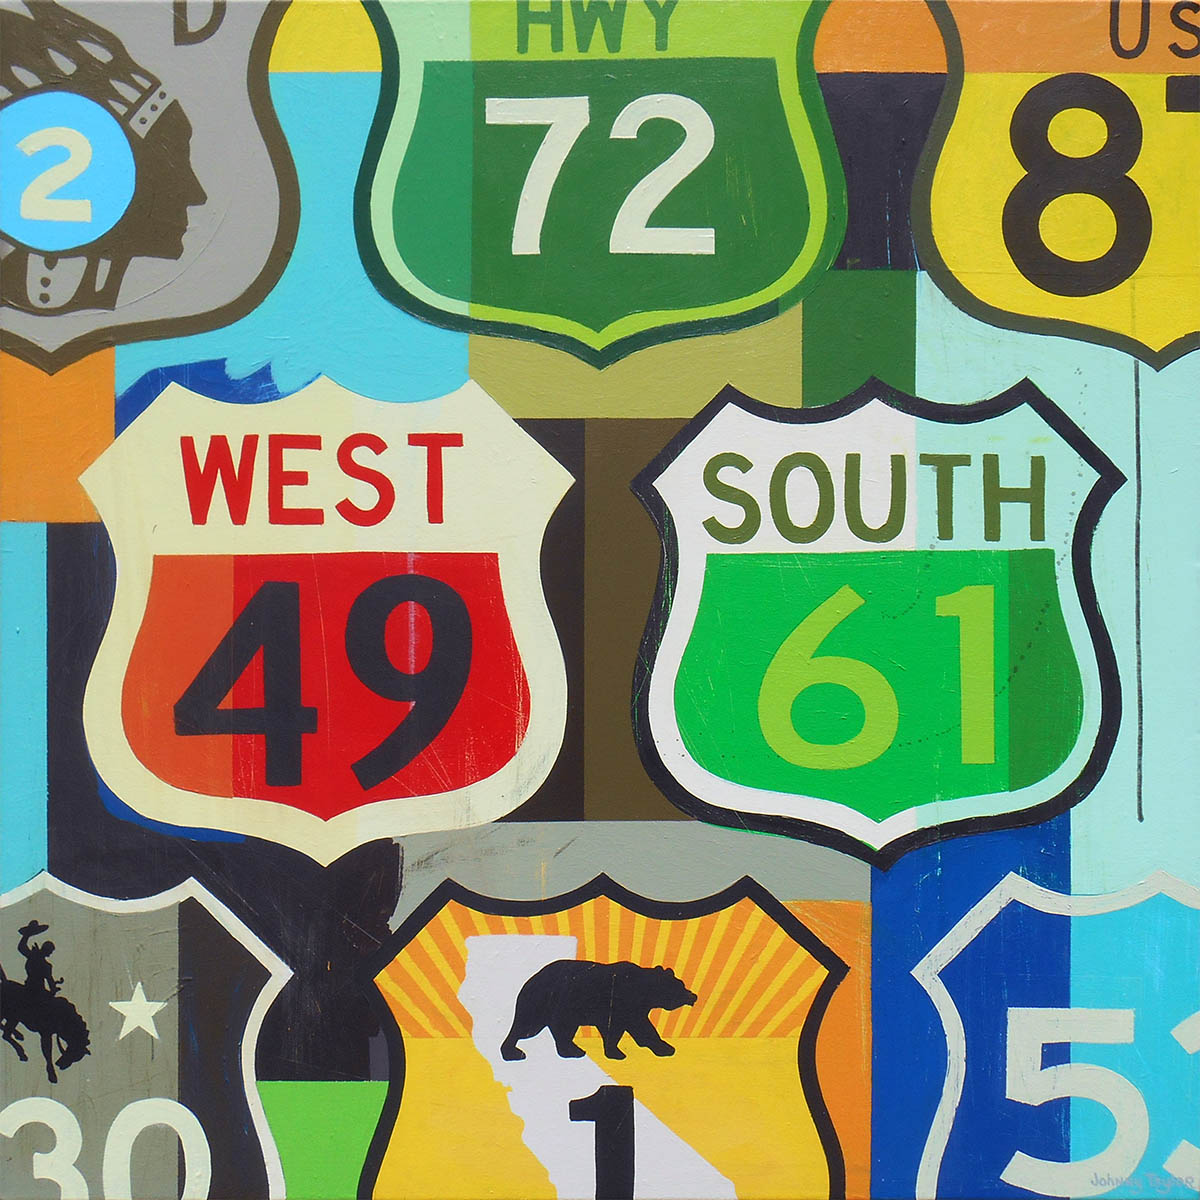 Highway sign pop art by Johnny Taylor